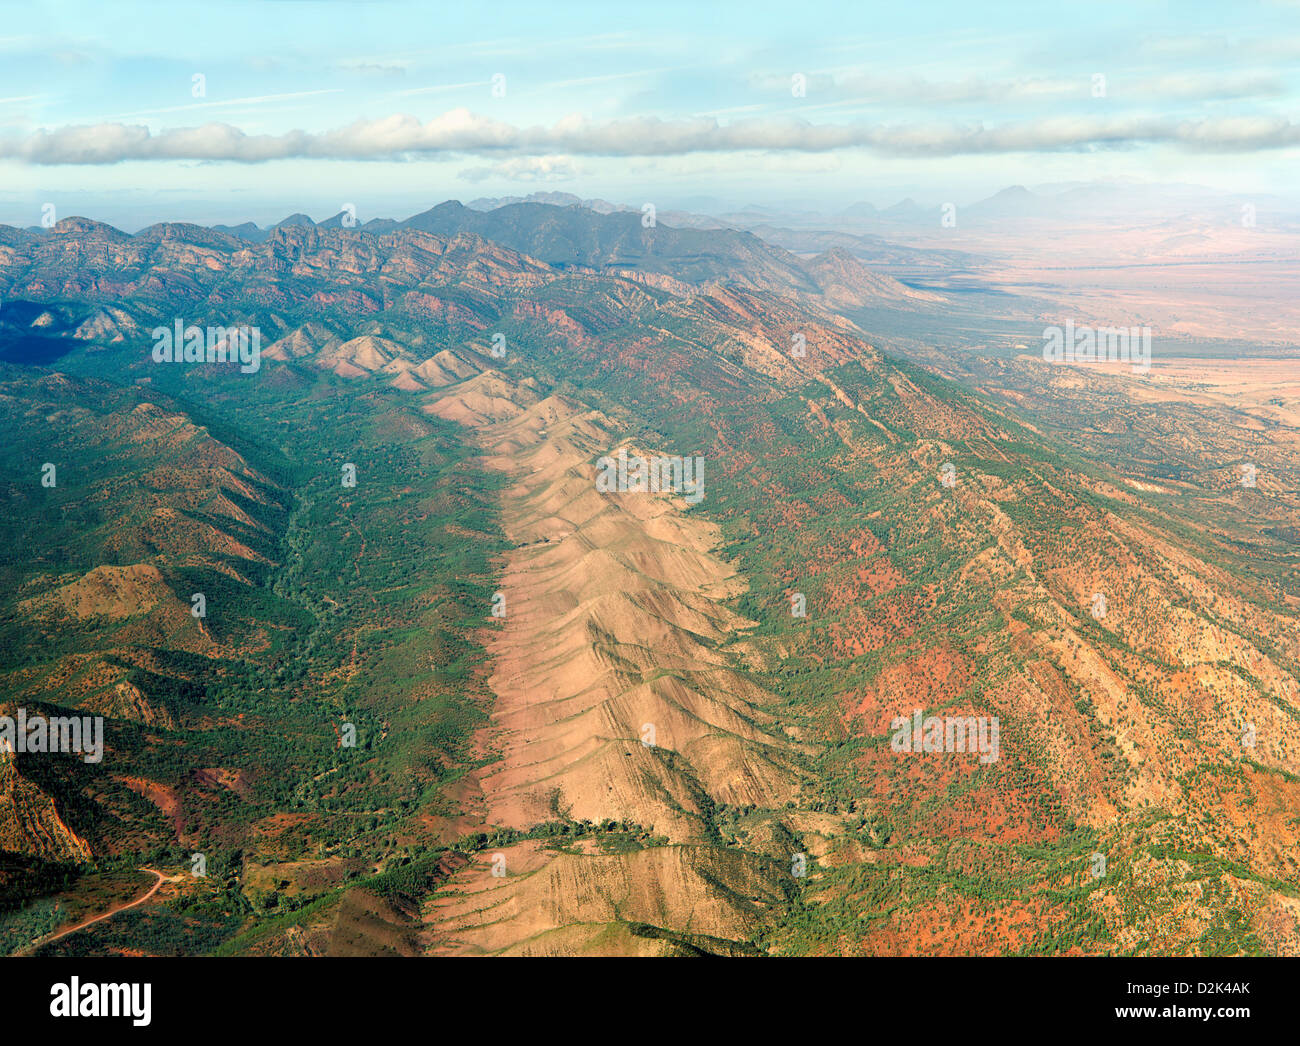 Aerial view of the ABC Range in South Australia's rugged Flinders Ranges - Stock Image